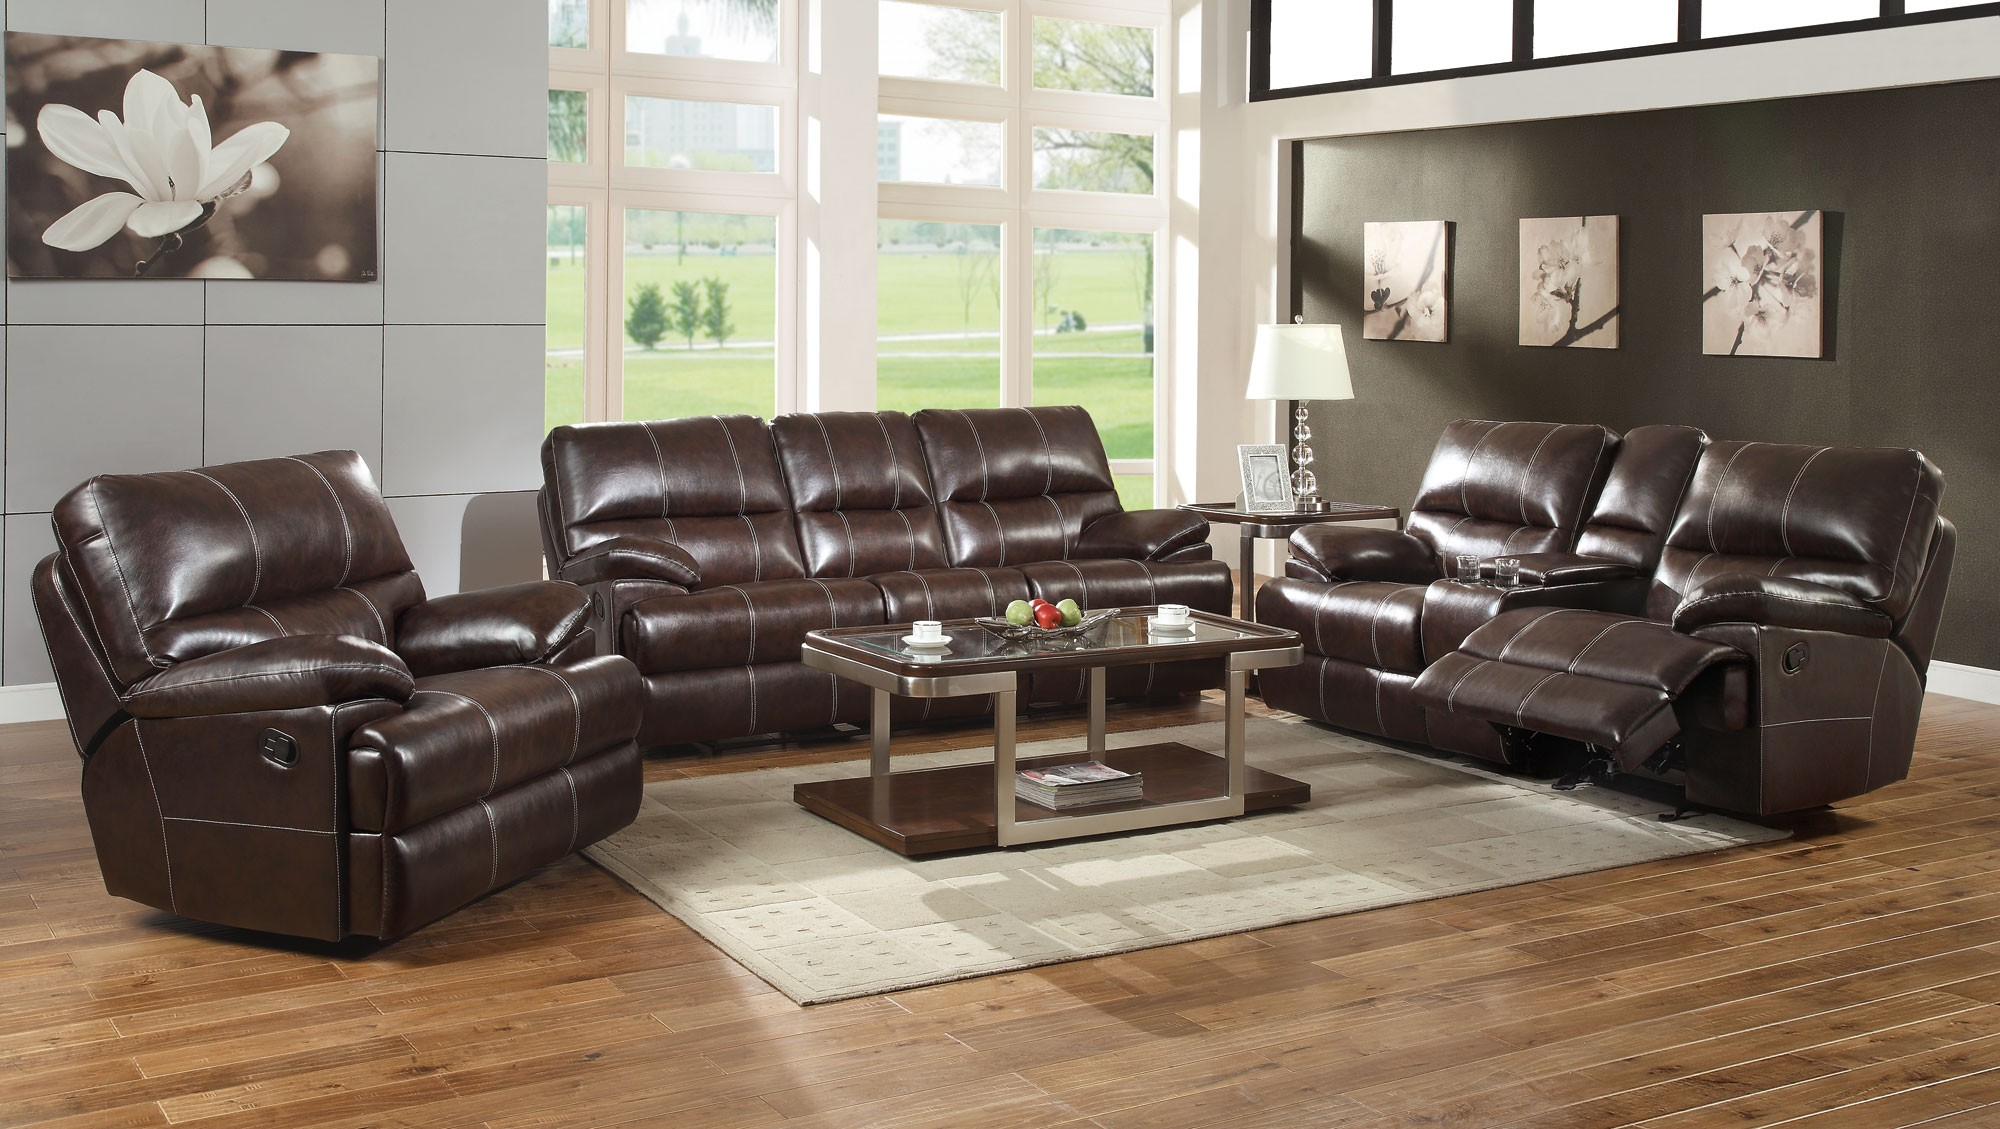 Living Room Recliners Chairs Recliner Chairs For Your